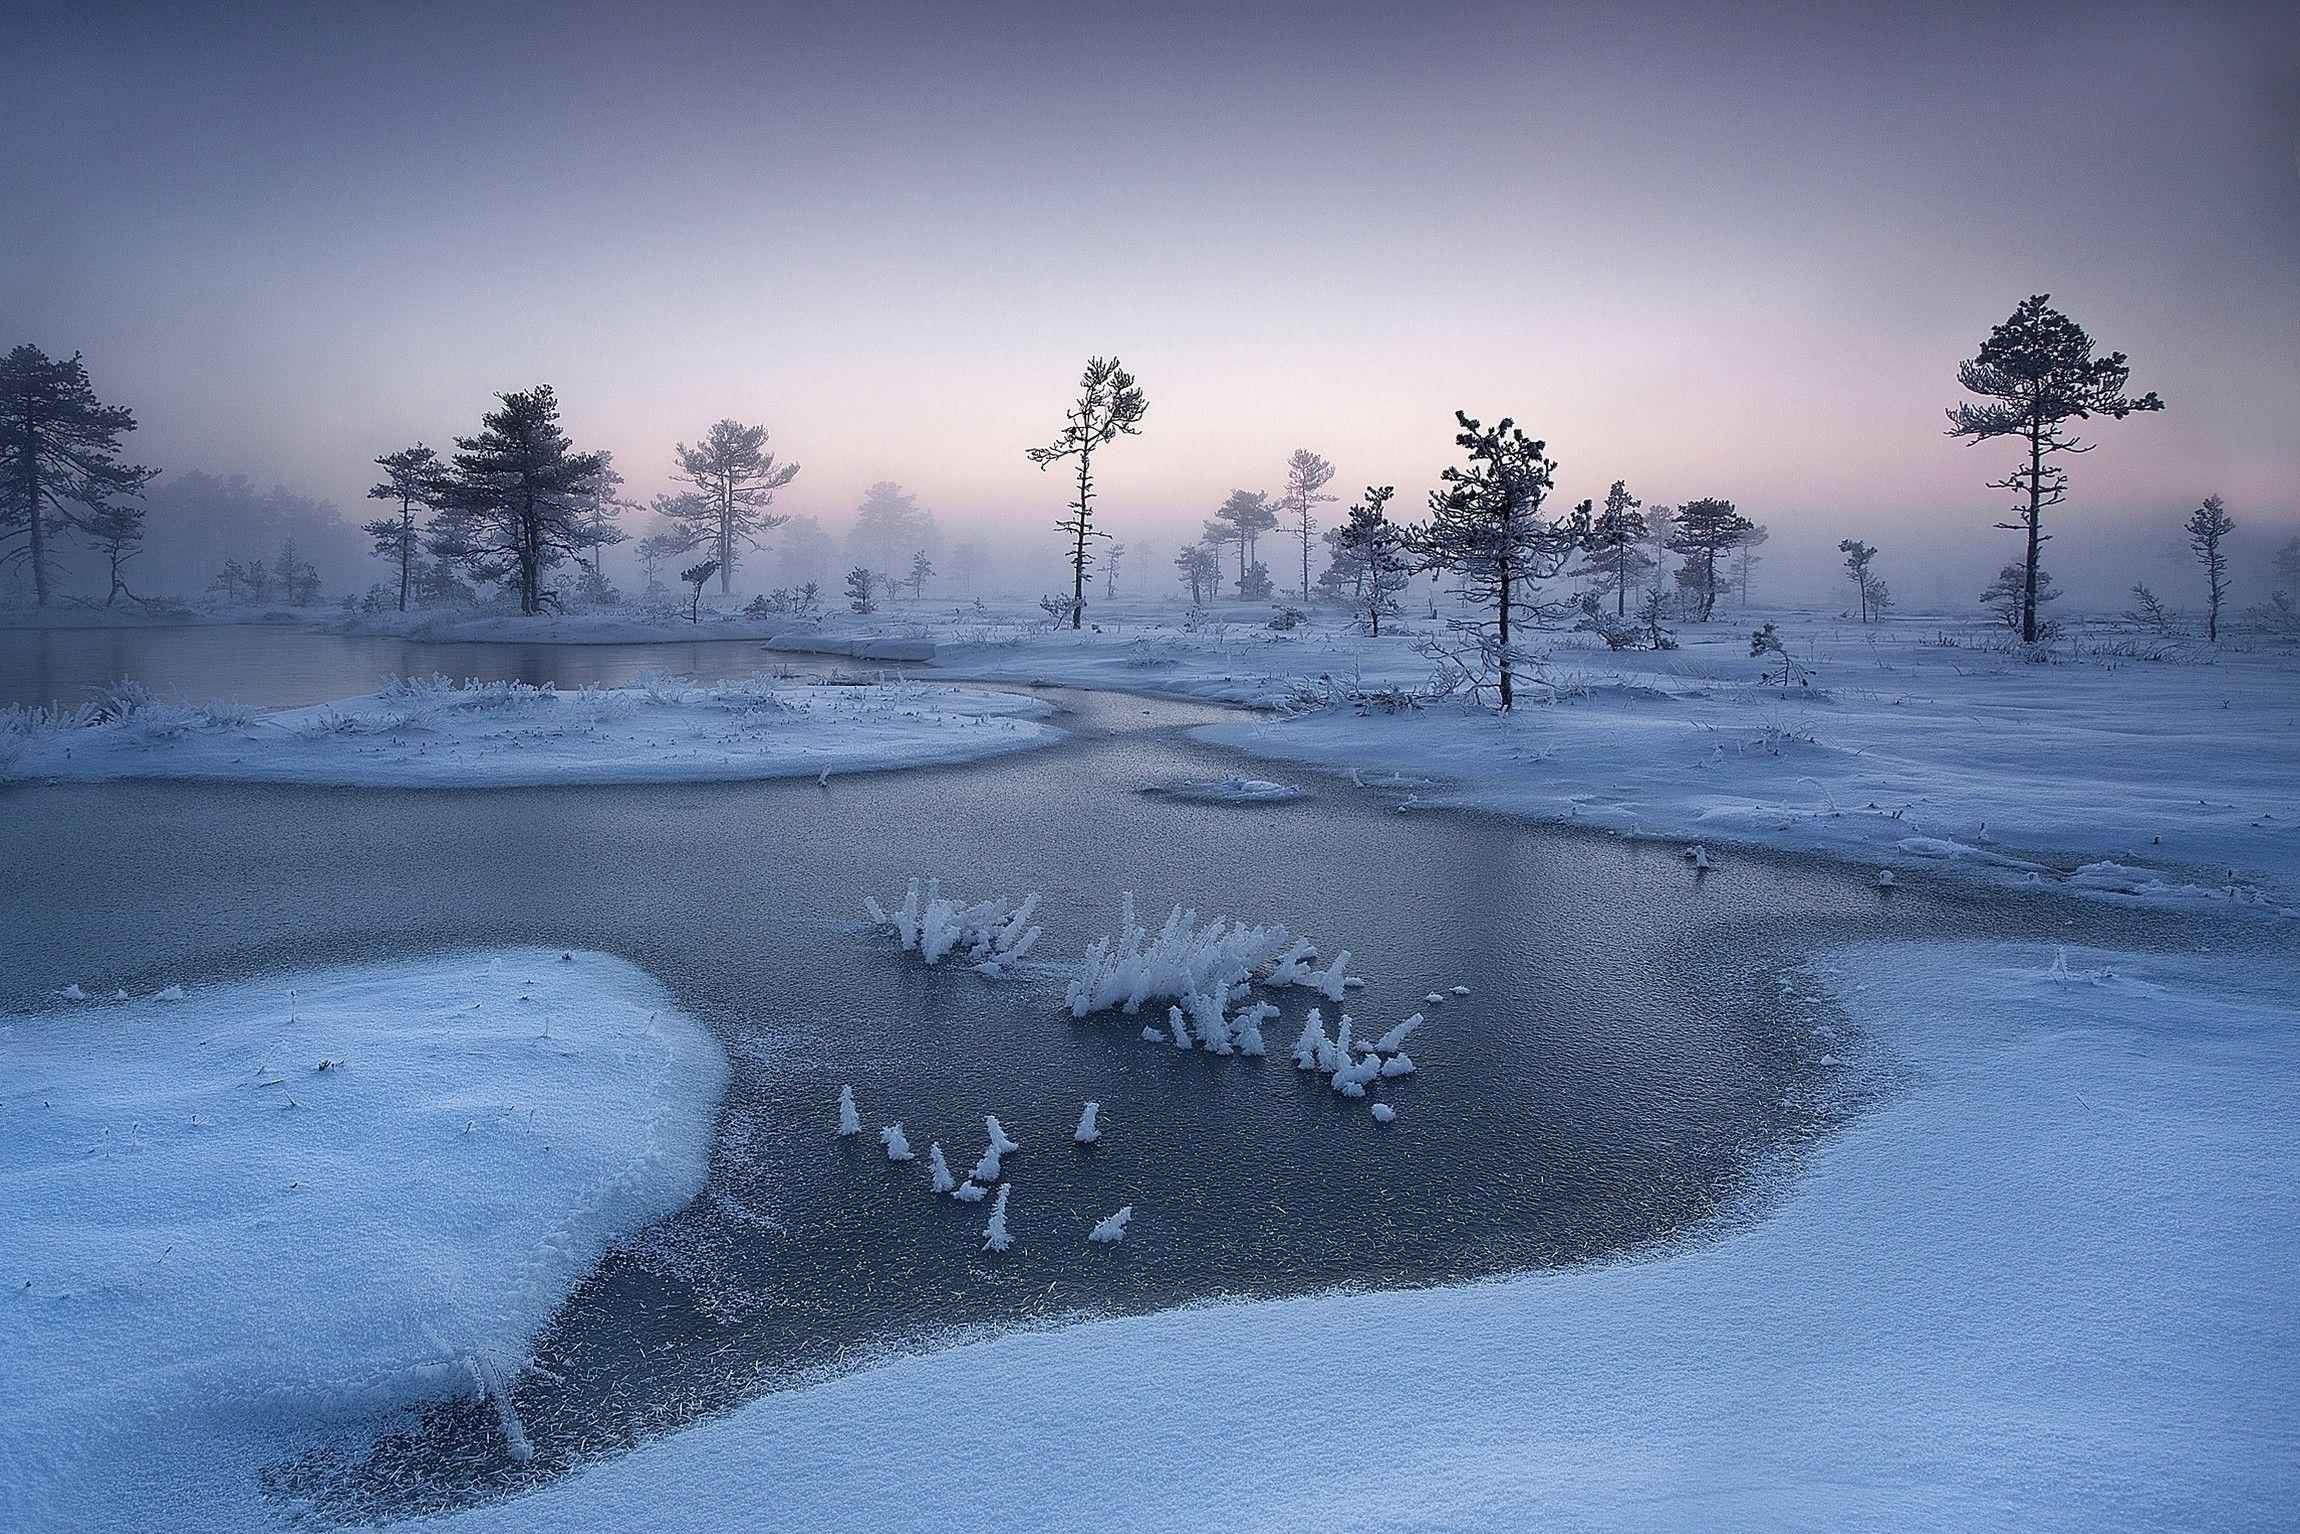 nature, Landscape, Sunrise, Winter, Mist, River, Trees, Snow